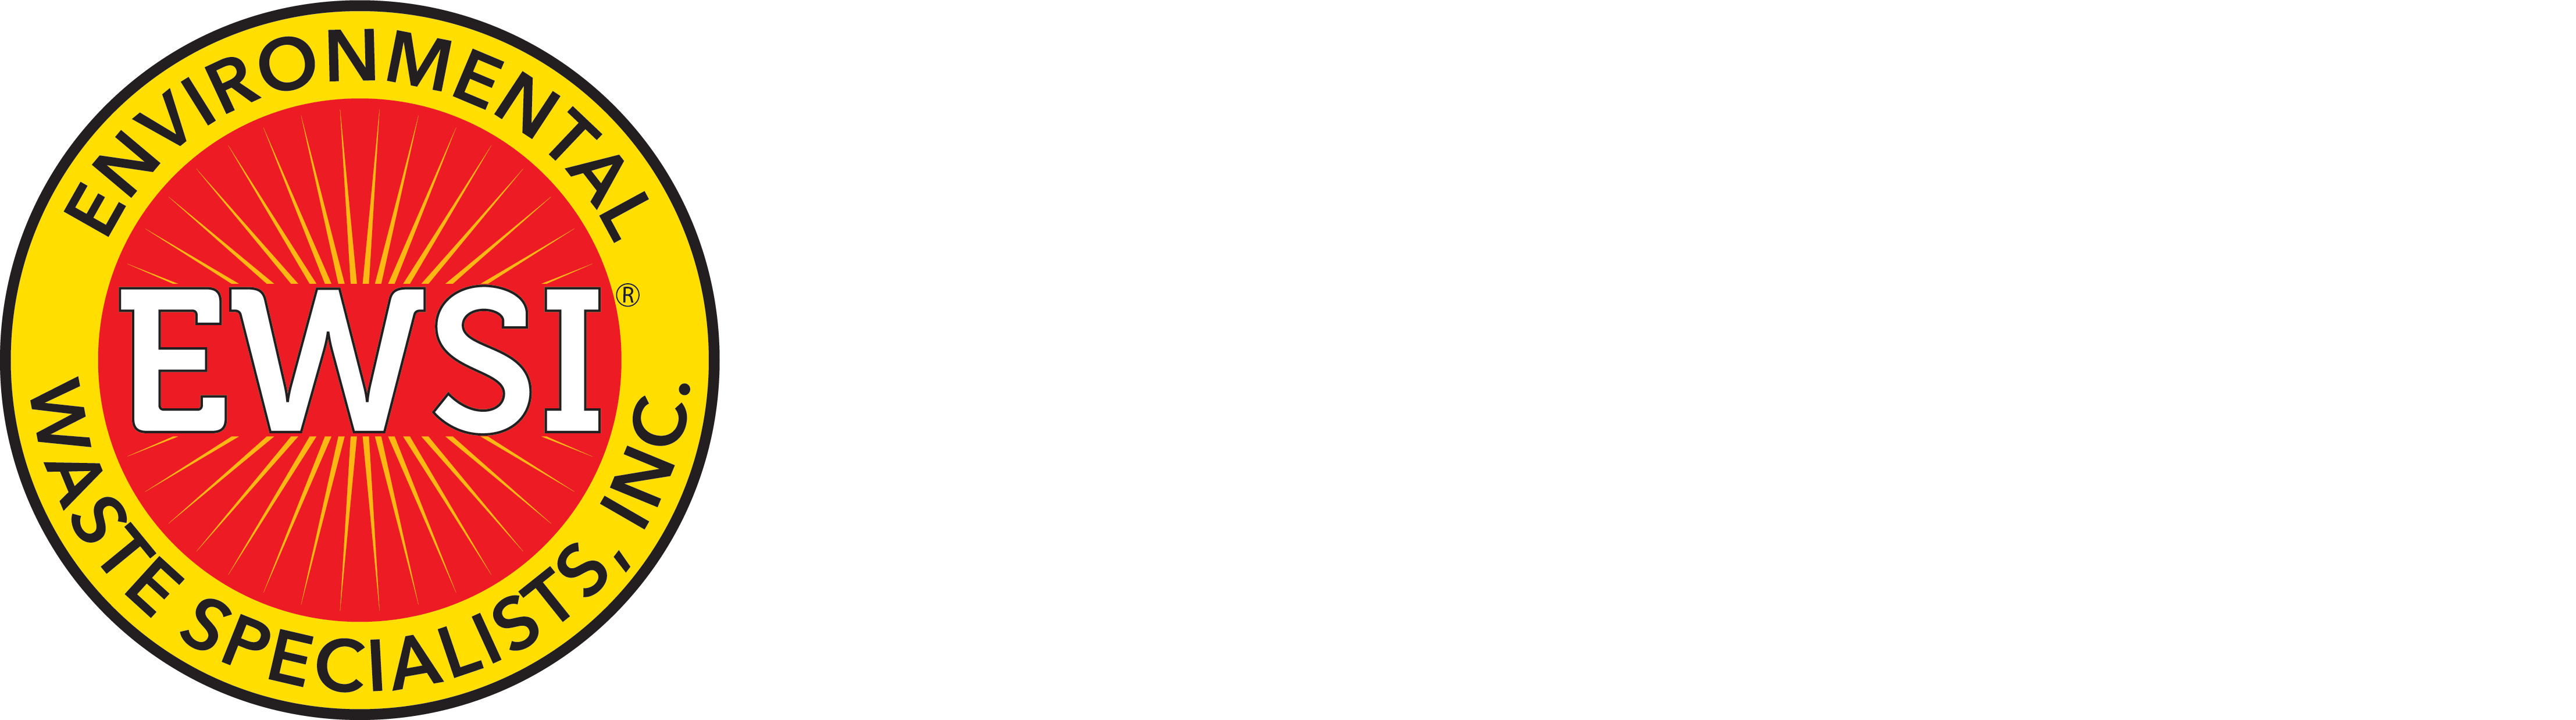 EWSI - Environmental Waste Specialists